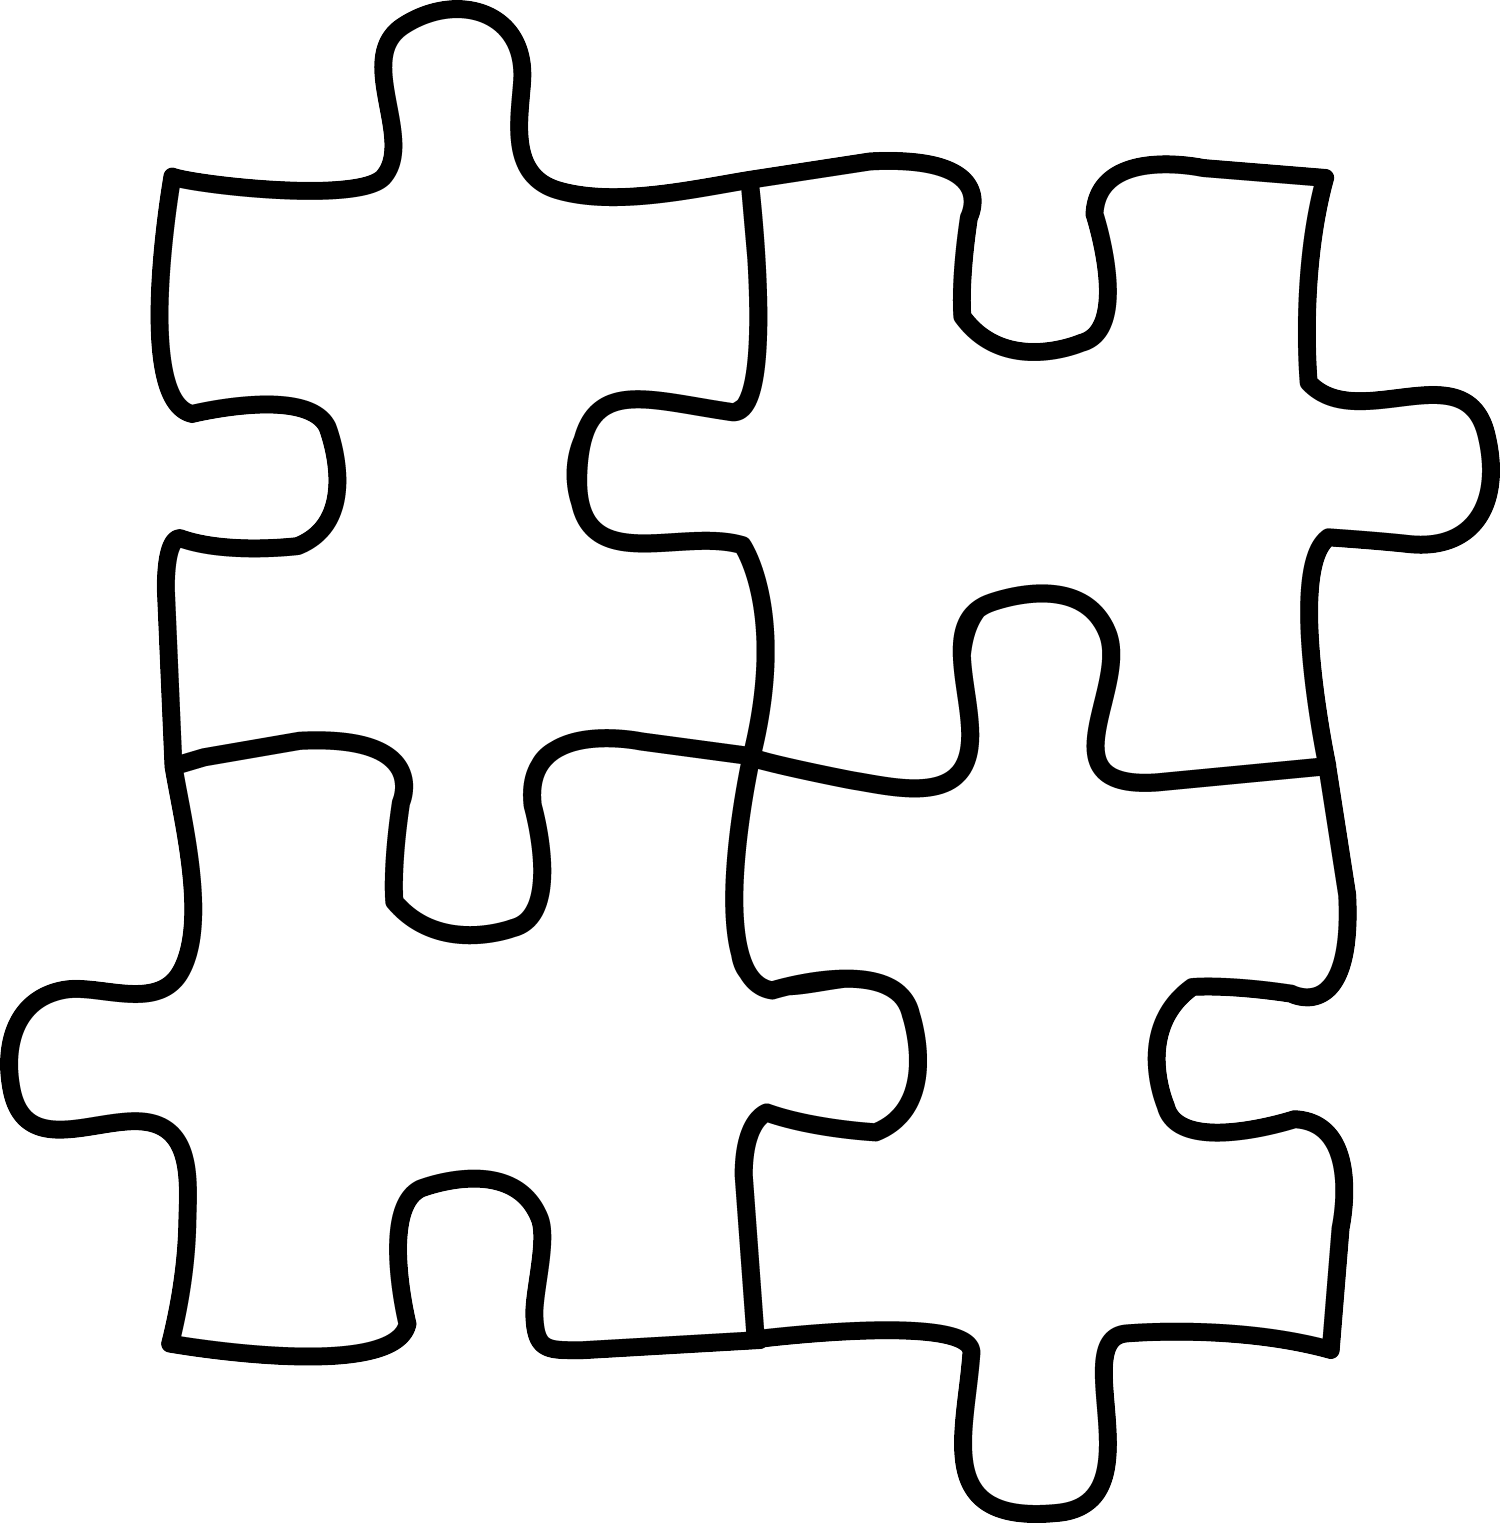 Pzzle clipart png stock Puzzle Clipart Black And White | Free download best Puzzle ... png stock